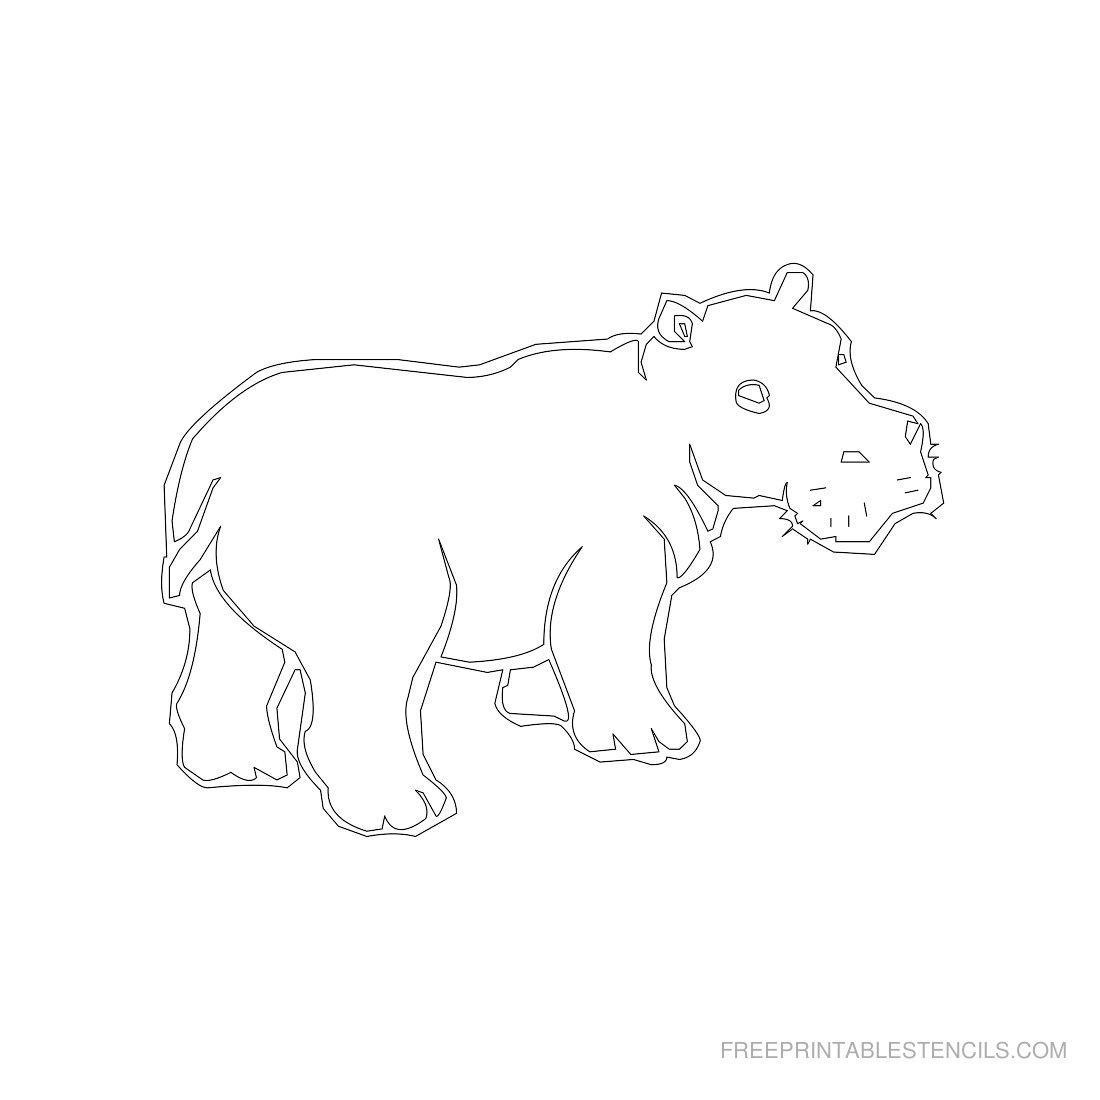 Free Printable Animal Stencil Hippopotamus